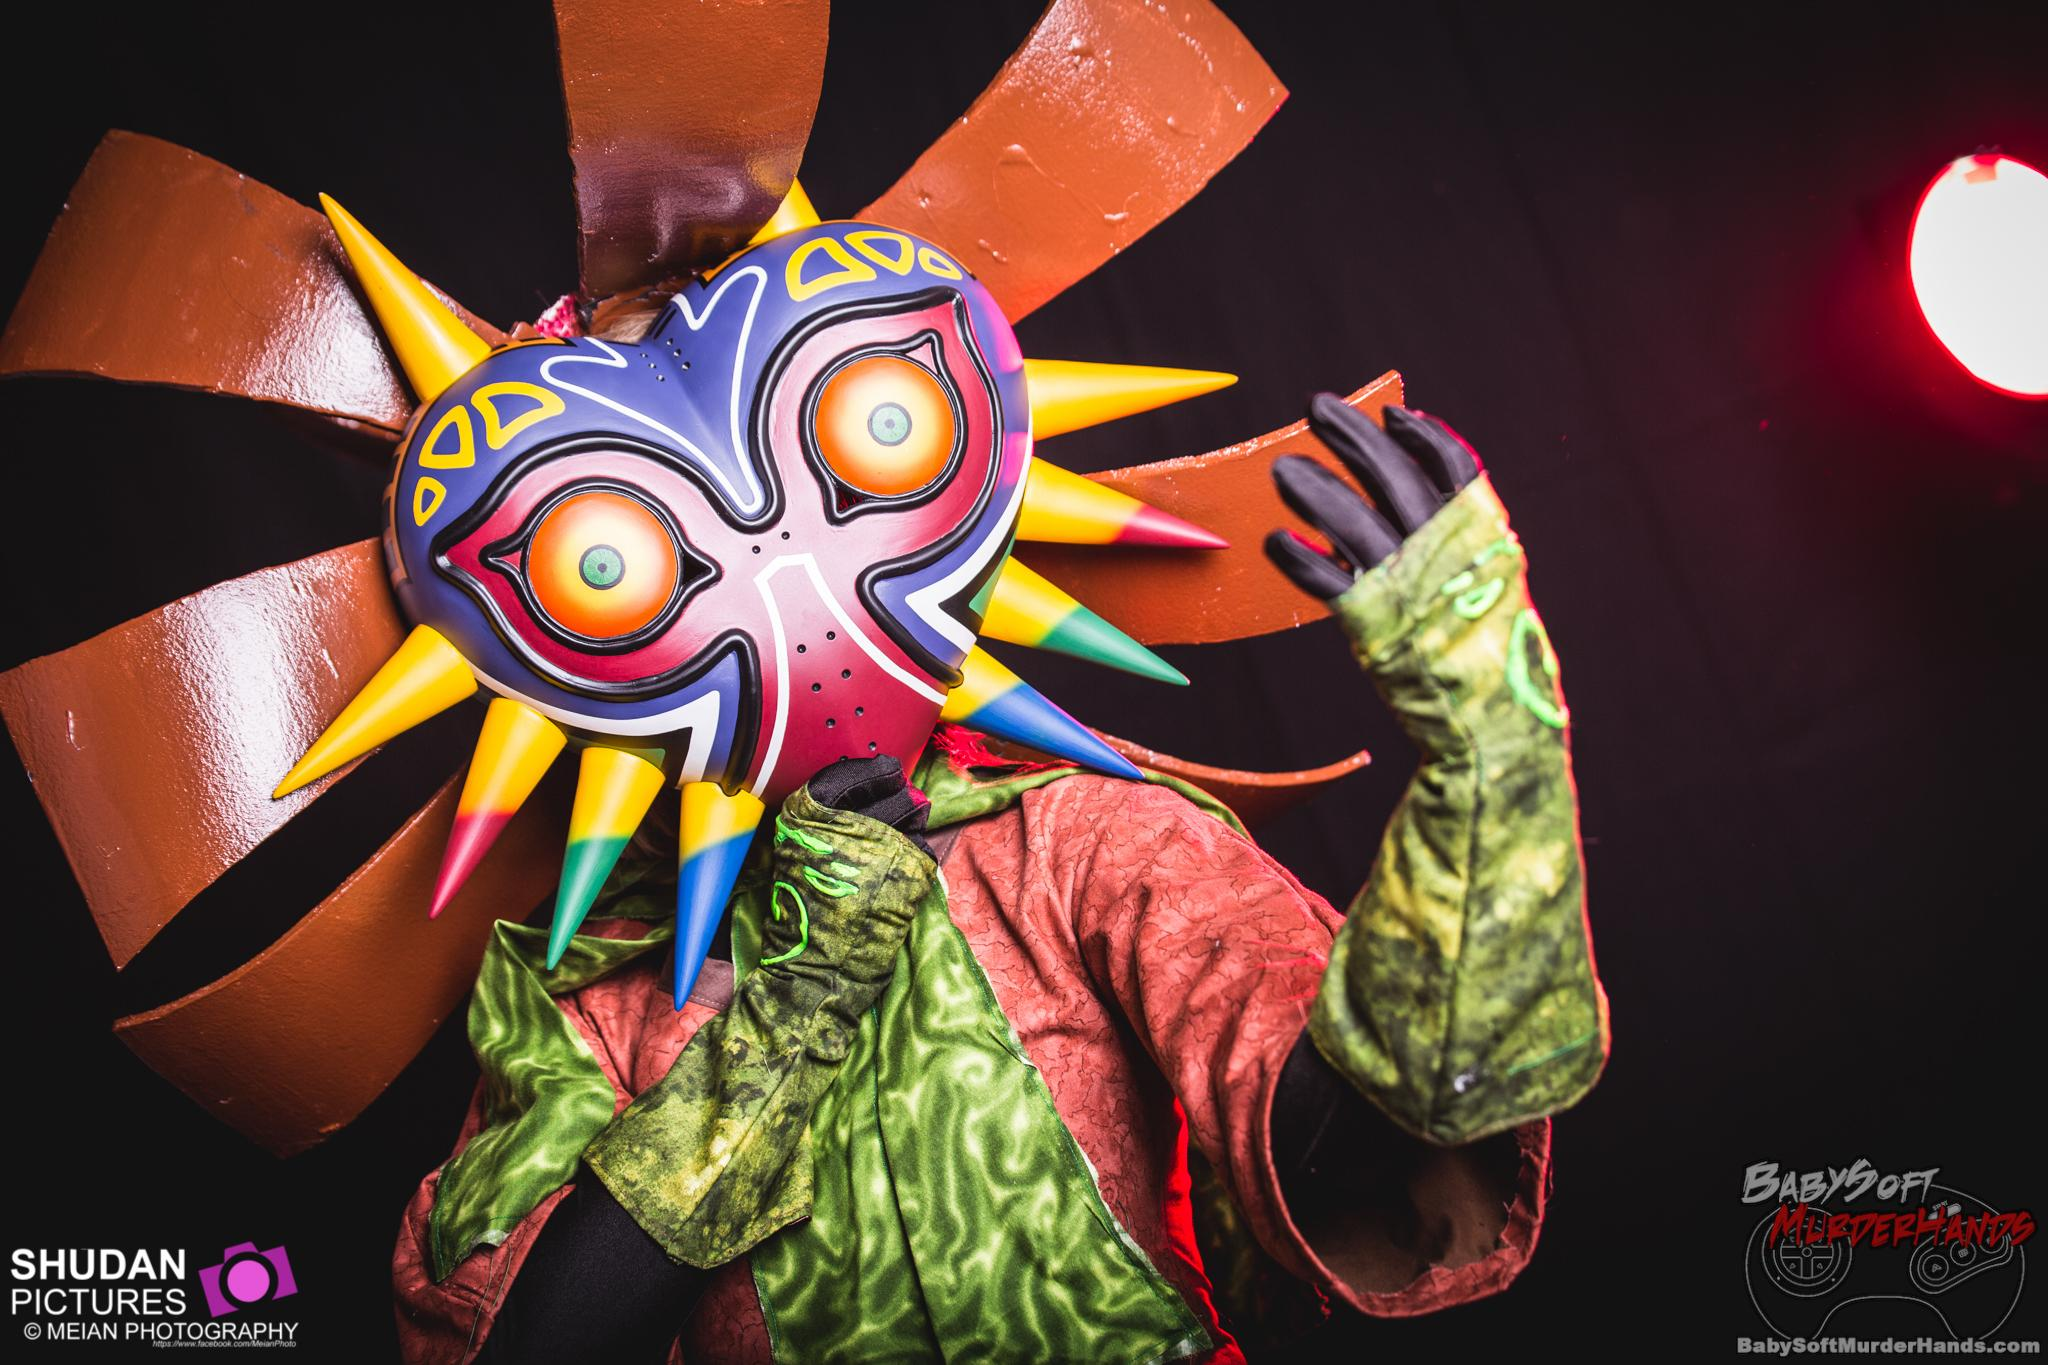 Tatasenko Mana (Tatasenko Mana) Skullkid of The Legend of Zelda: Majora's Mask Cosplay